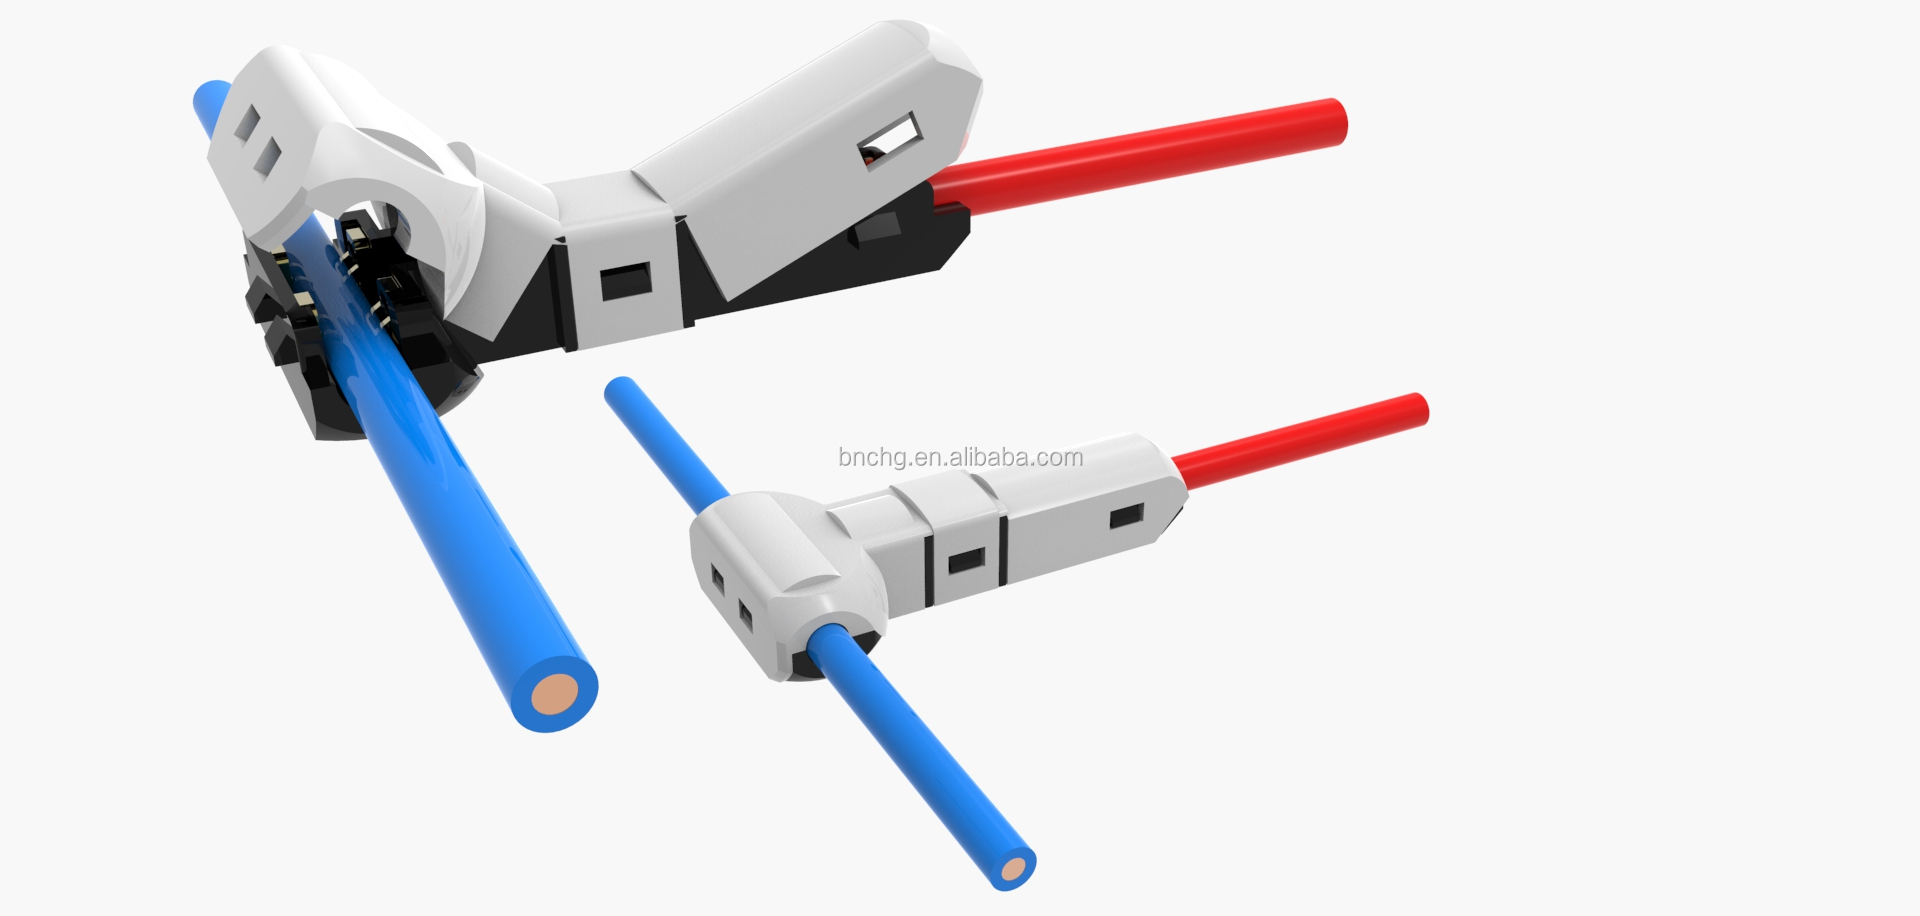 Newest Fast Connect Electrical Wire Terminal 60018033011 additionally Content as well 3108 Tpk 03 Immersion Probe K Type Thermocouple 50 To 700 C further Guide Making Line Wire Wire Connections likewise 53500 Terminal Blocks. on terminal block connector types